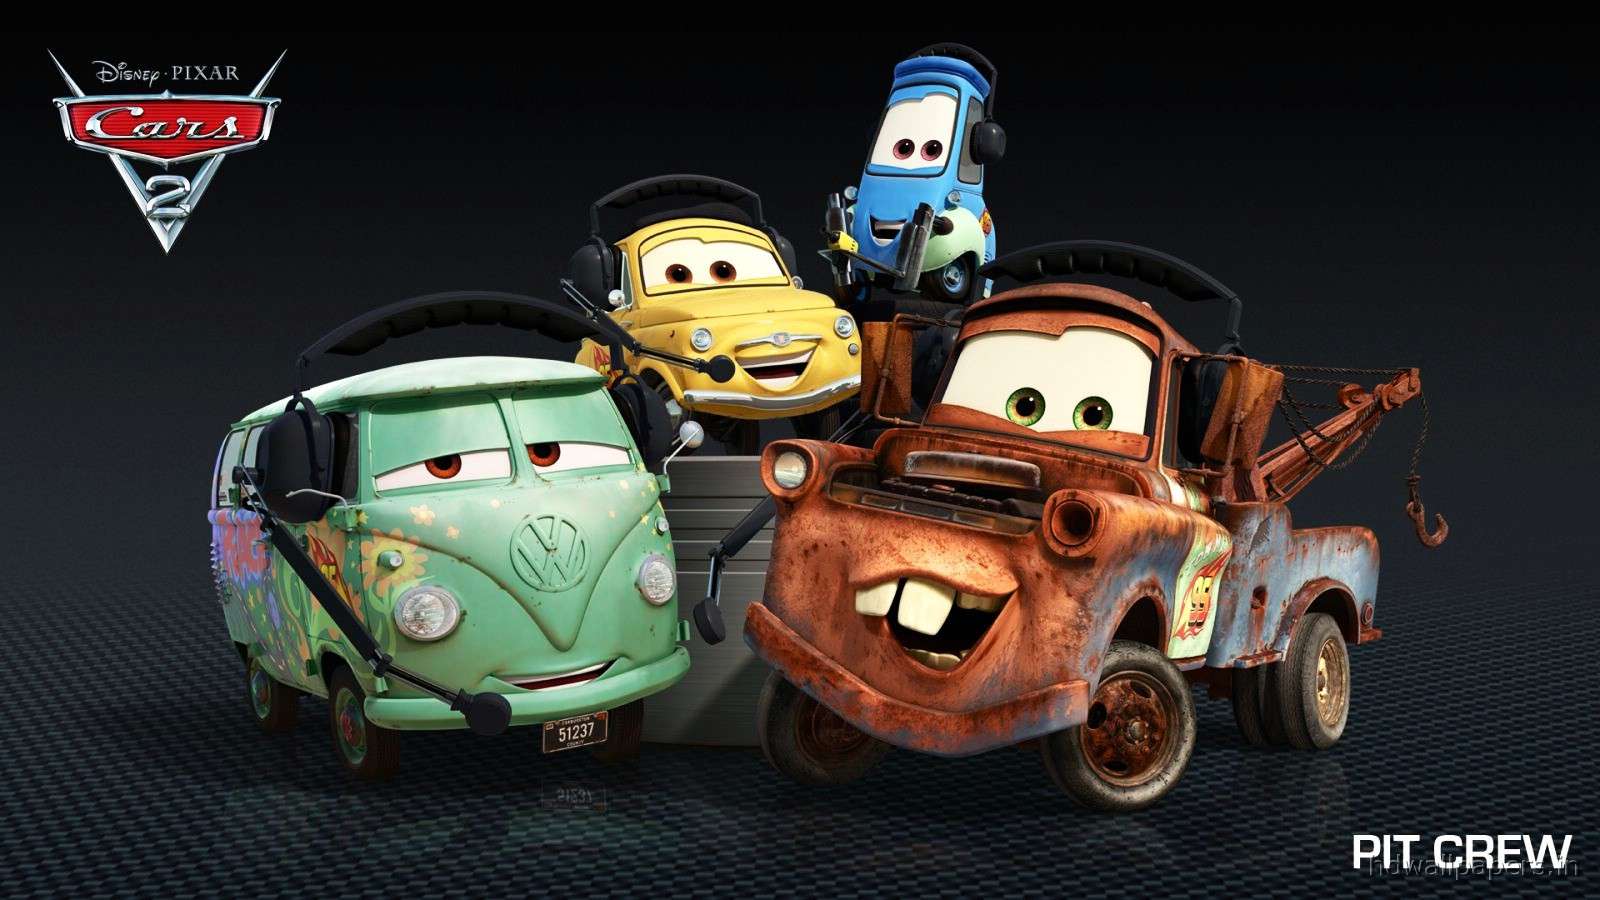 Disney Cars 2 Wallpapers Disney Pixar Cars 2 Cars 2 1600x900